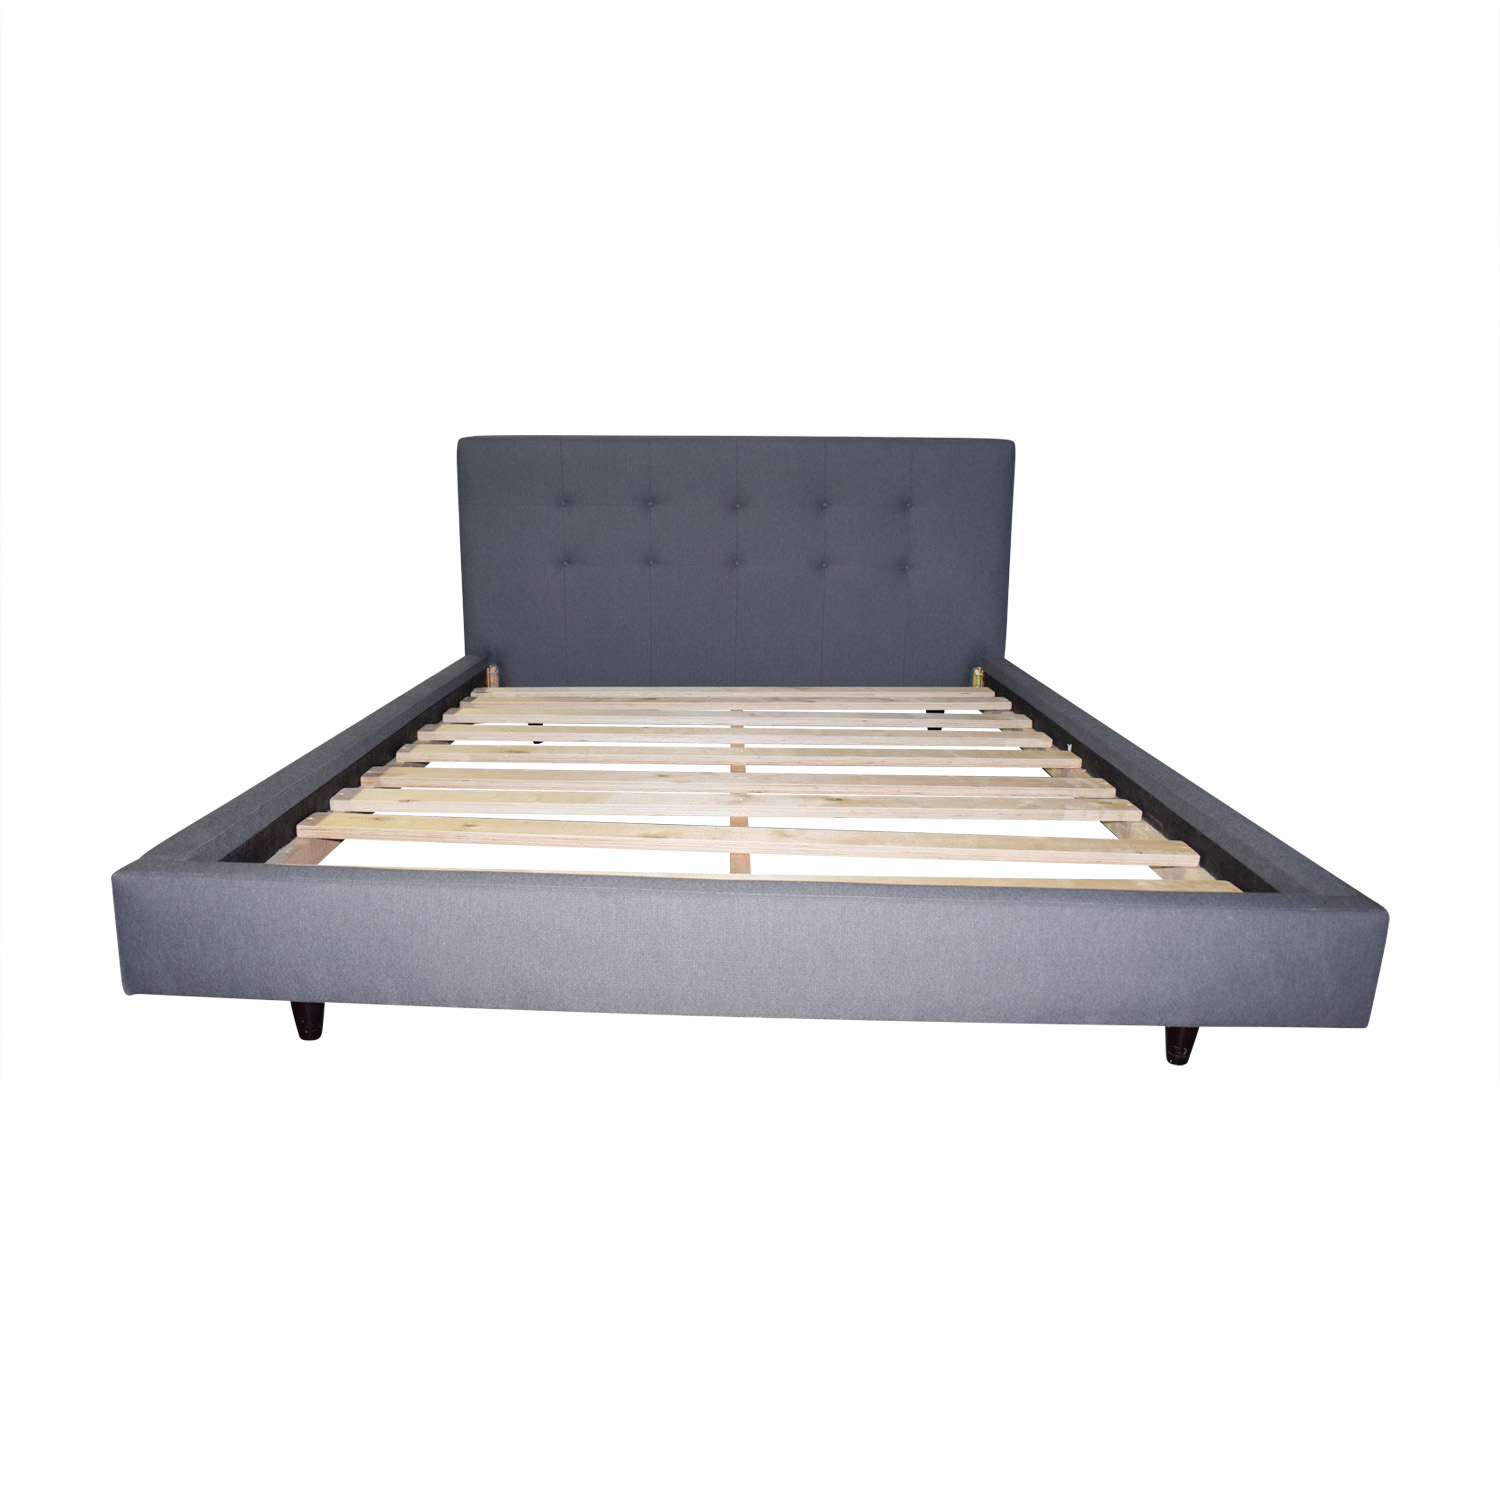 Crate & Barrel Tate Upholstered Queen Bed sale